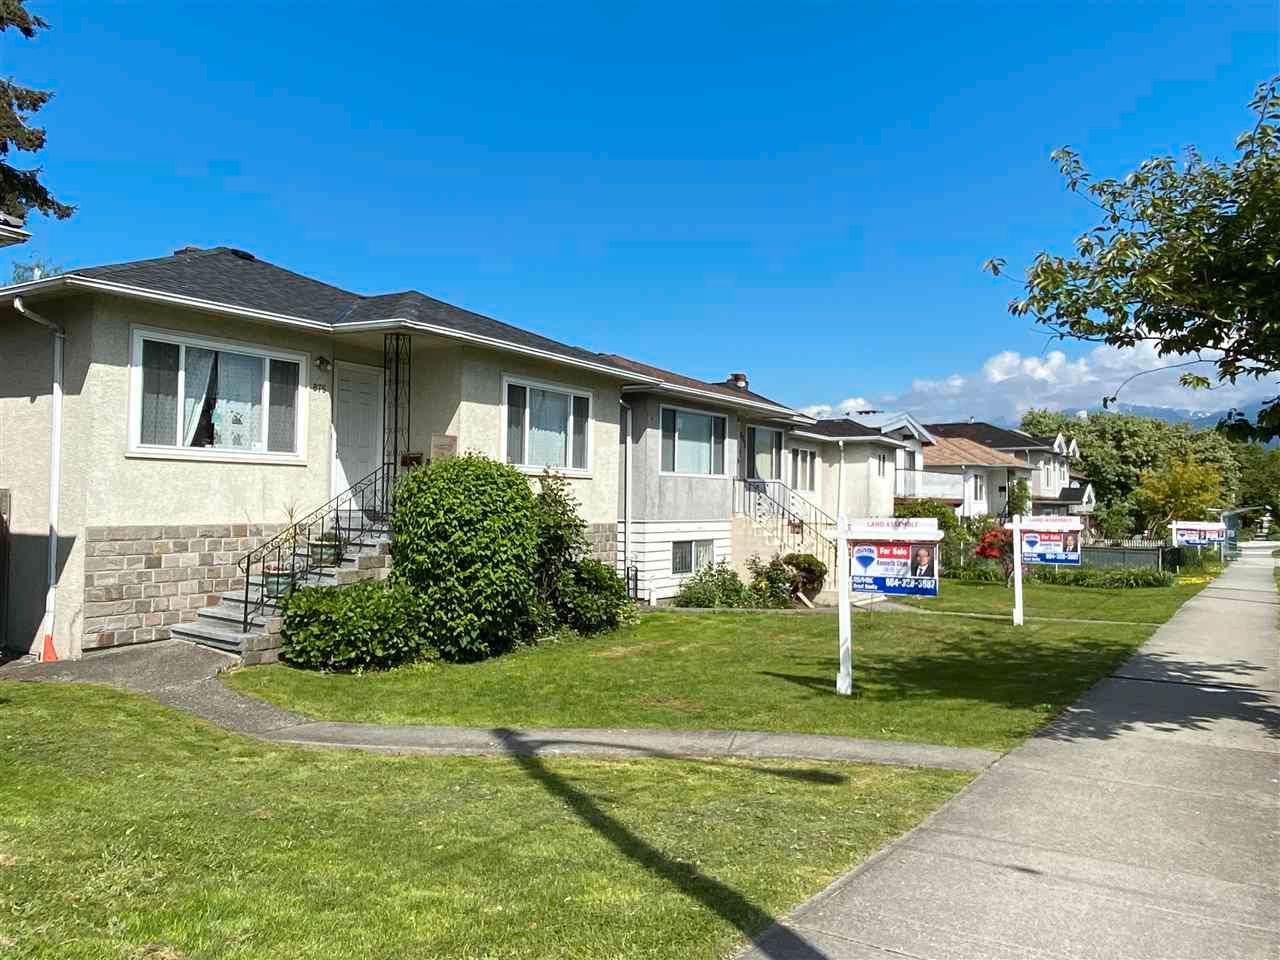 Photo 4: Photos: 839 NANAIMO Street in Vancouver: Hastings House for sale (Vancouver East)  : MLS®# R2569893